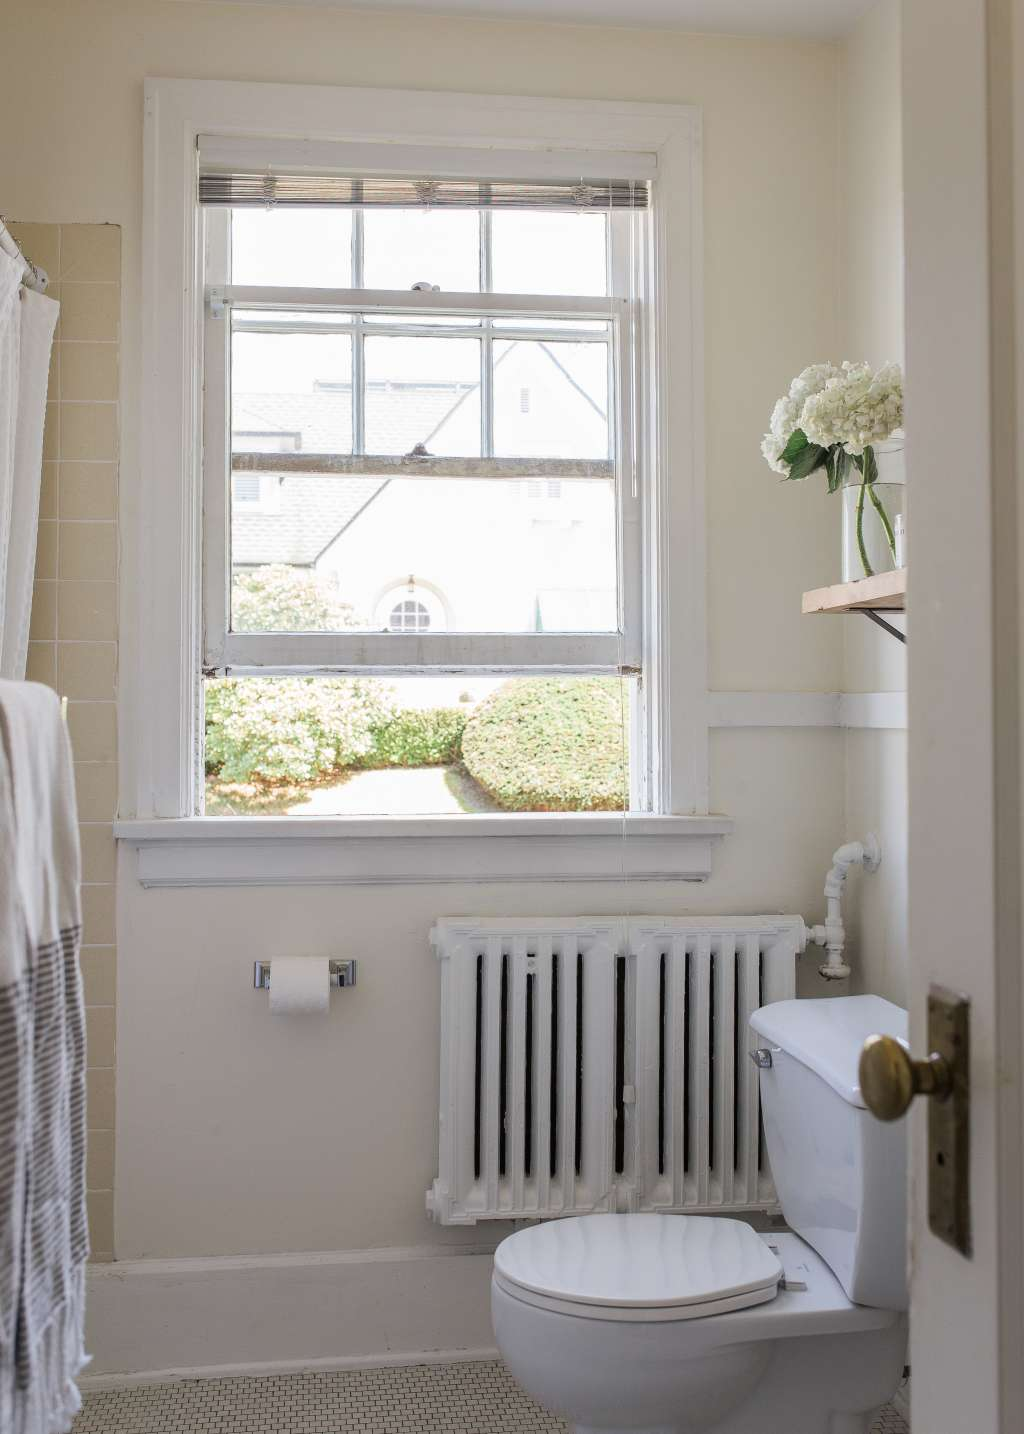 How to Clean a Bathroom Fast! (So You Can Get Back to Living Your Life)